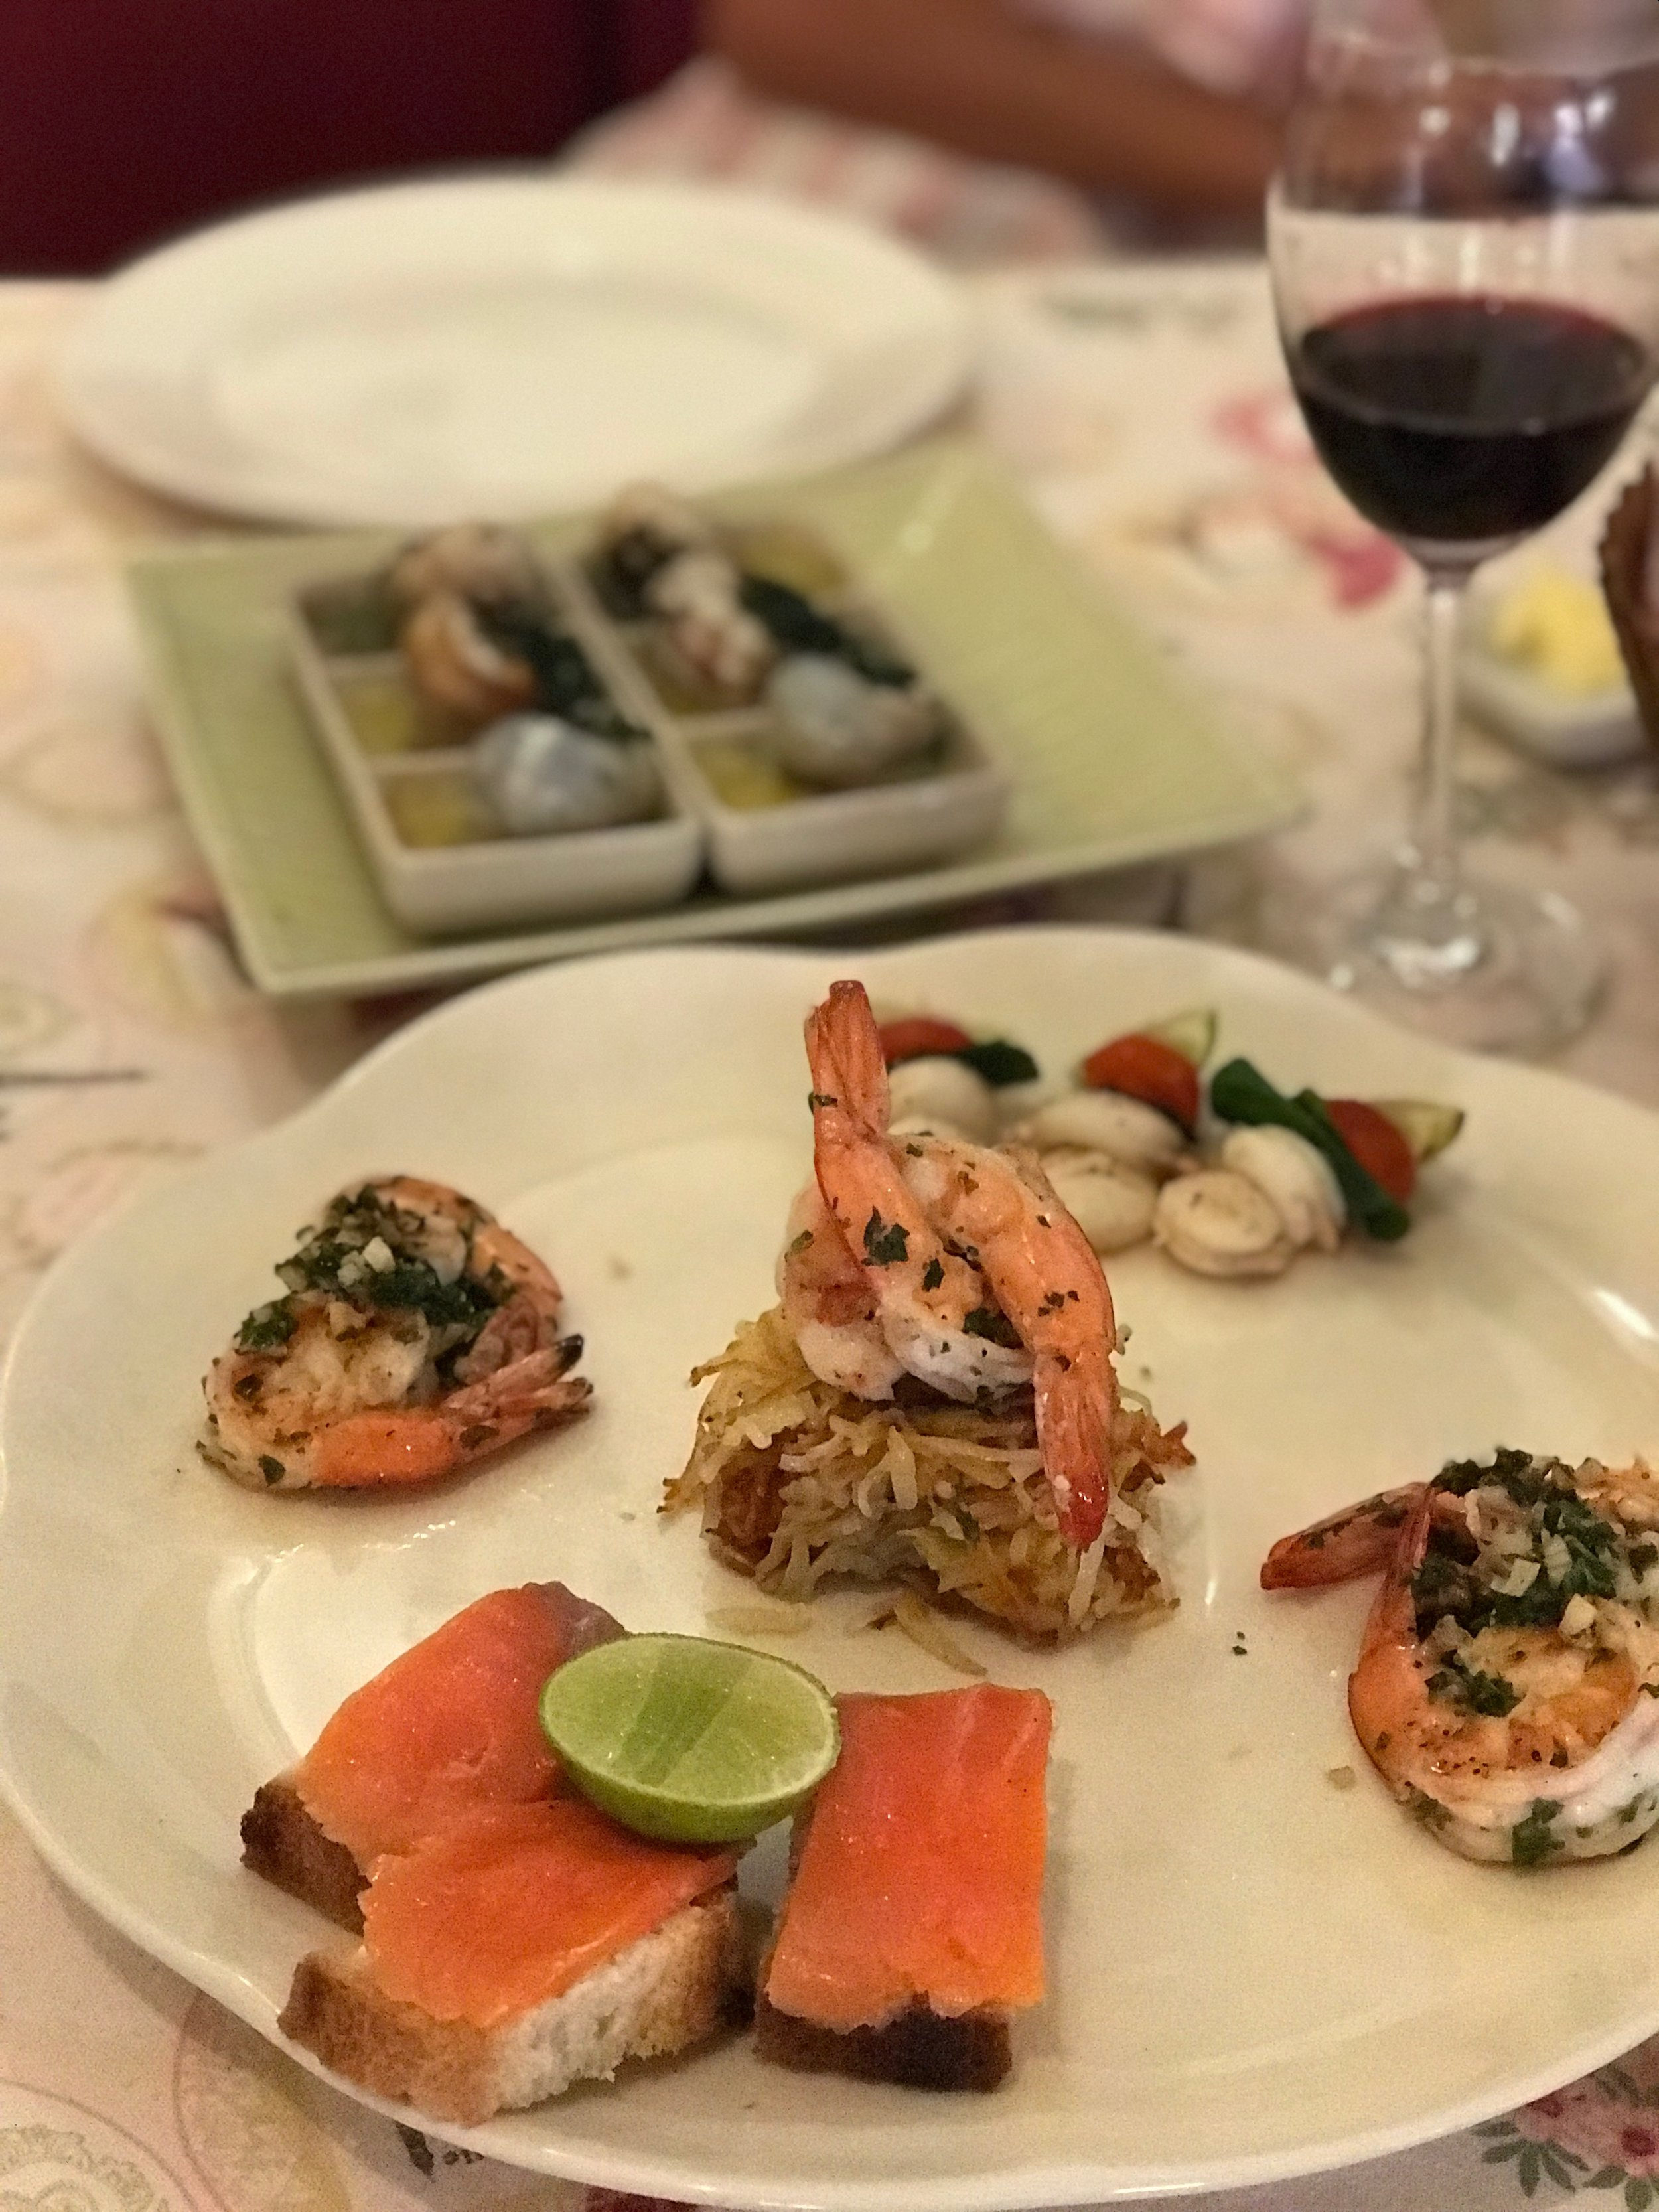 La terrasse is one of our favorite Chiang Mai restaurants